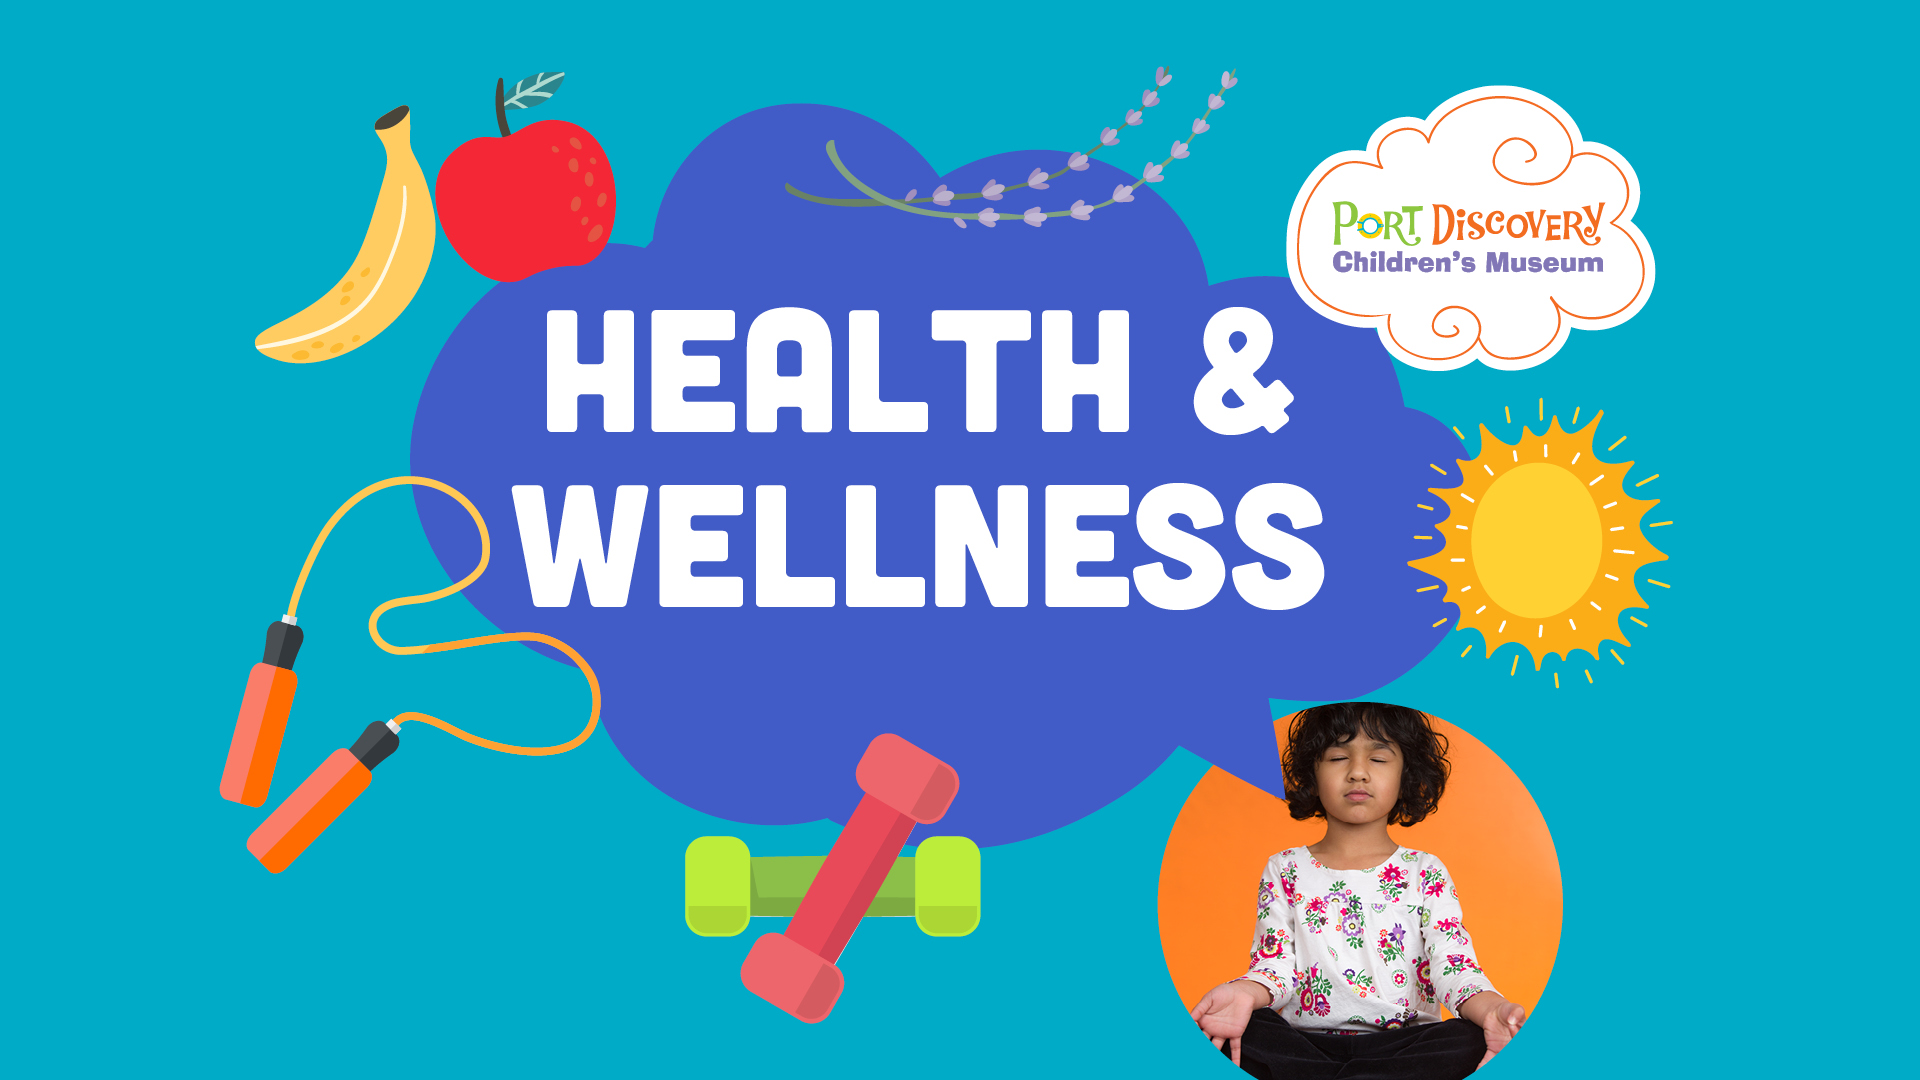 Health & Wellness Play Tips